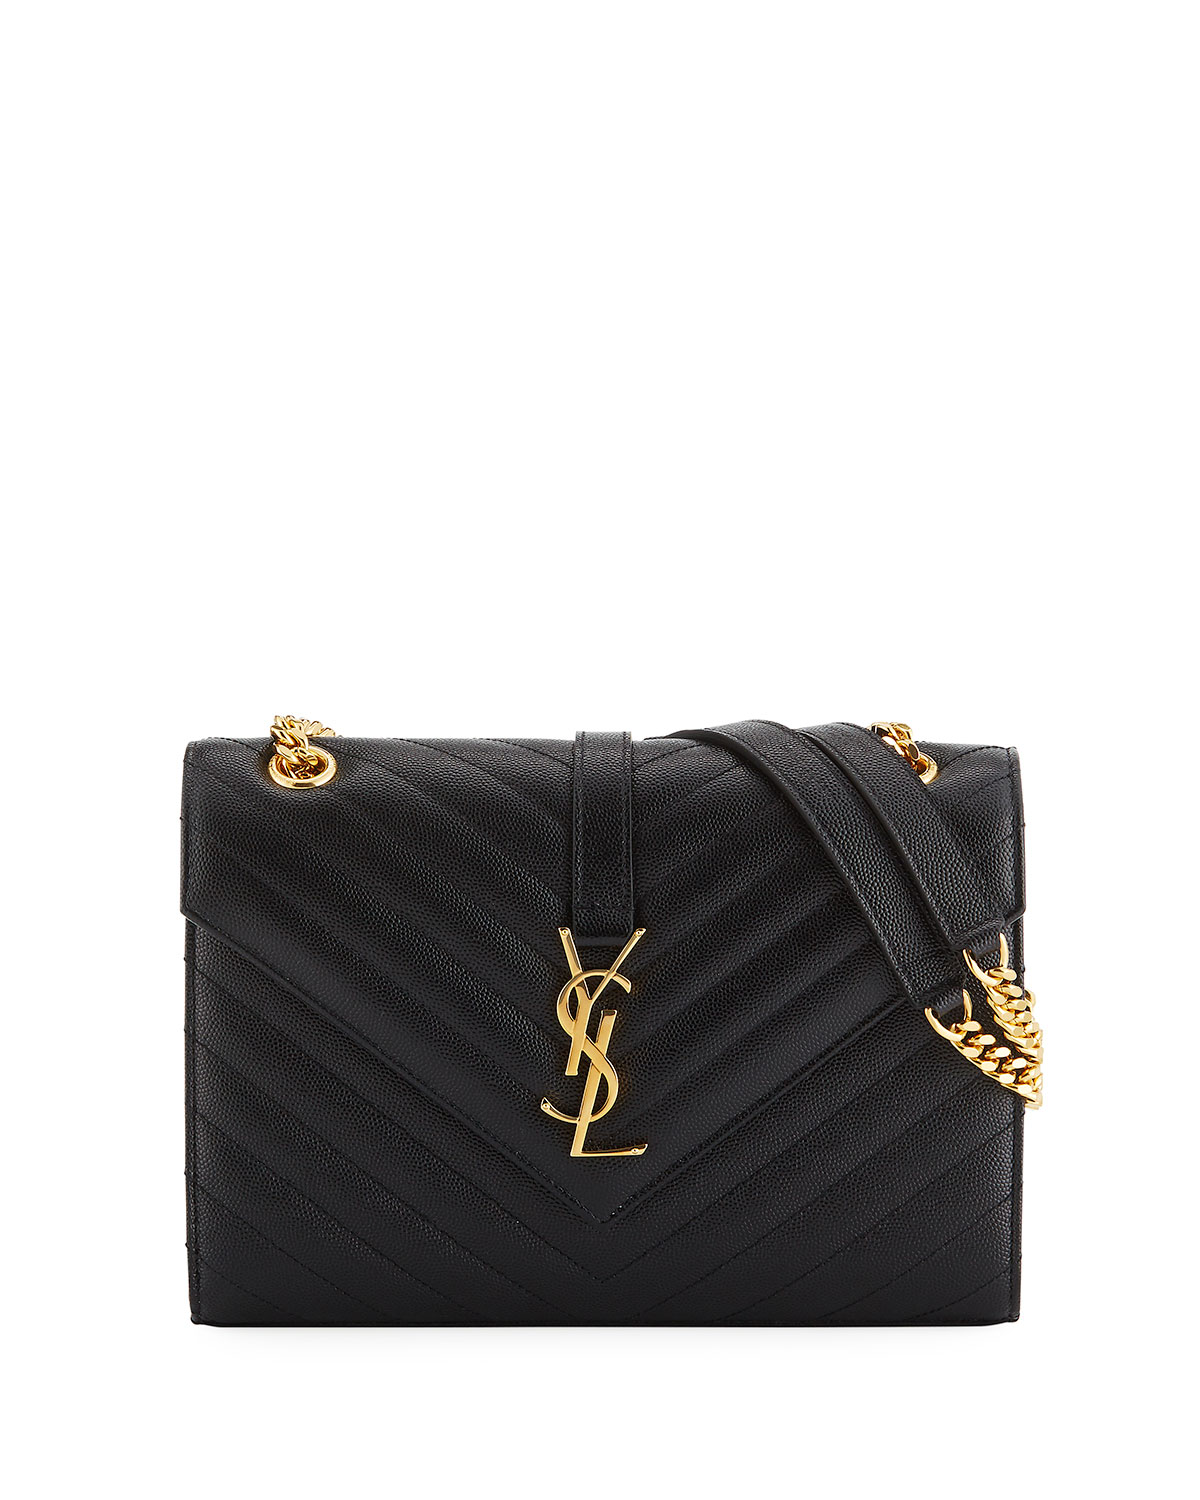 Saint Laurent V Flap Monogram Medium Envelope Shoulder Bag